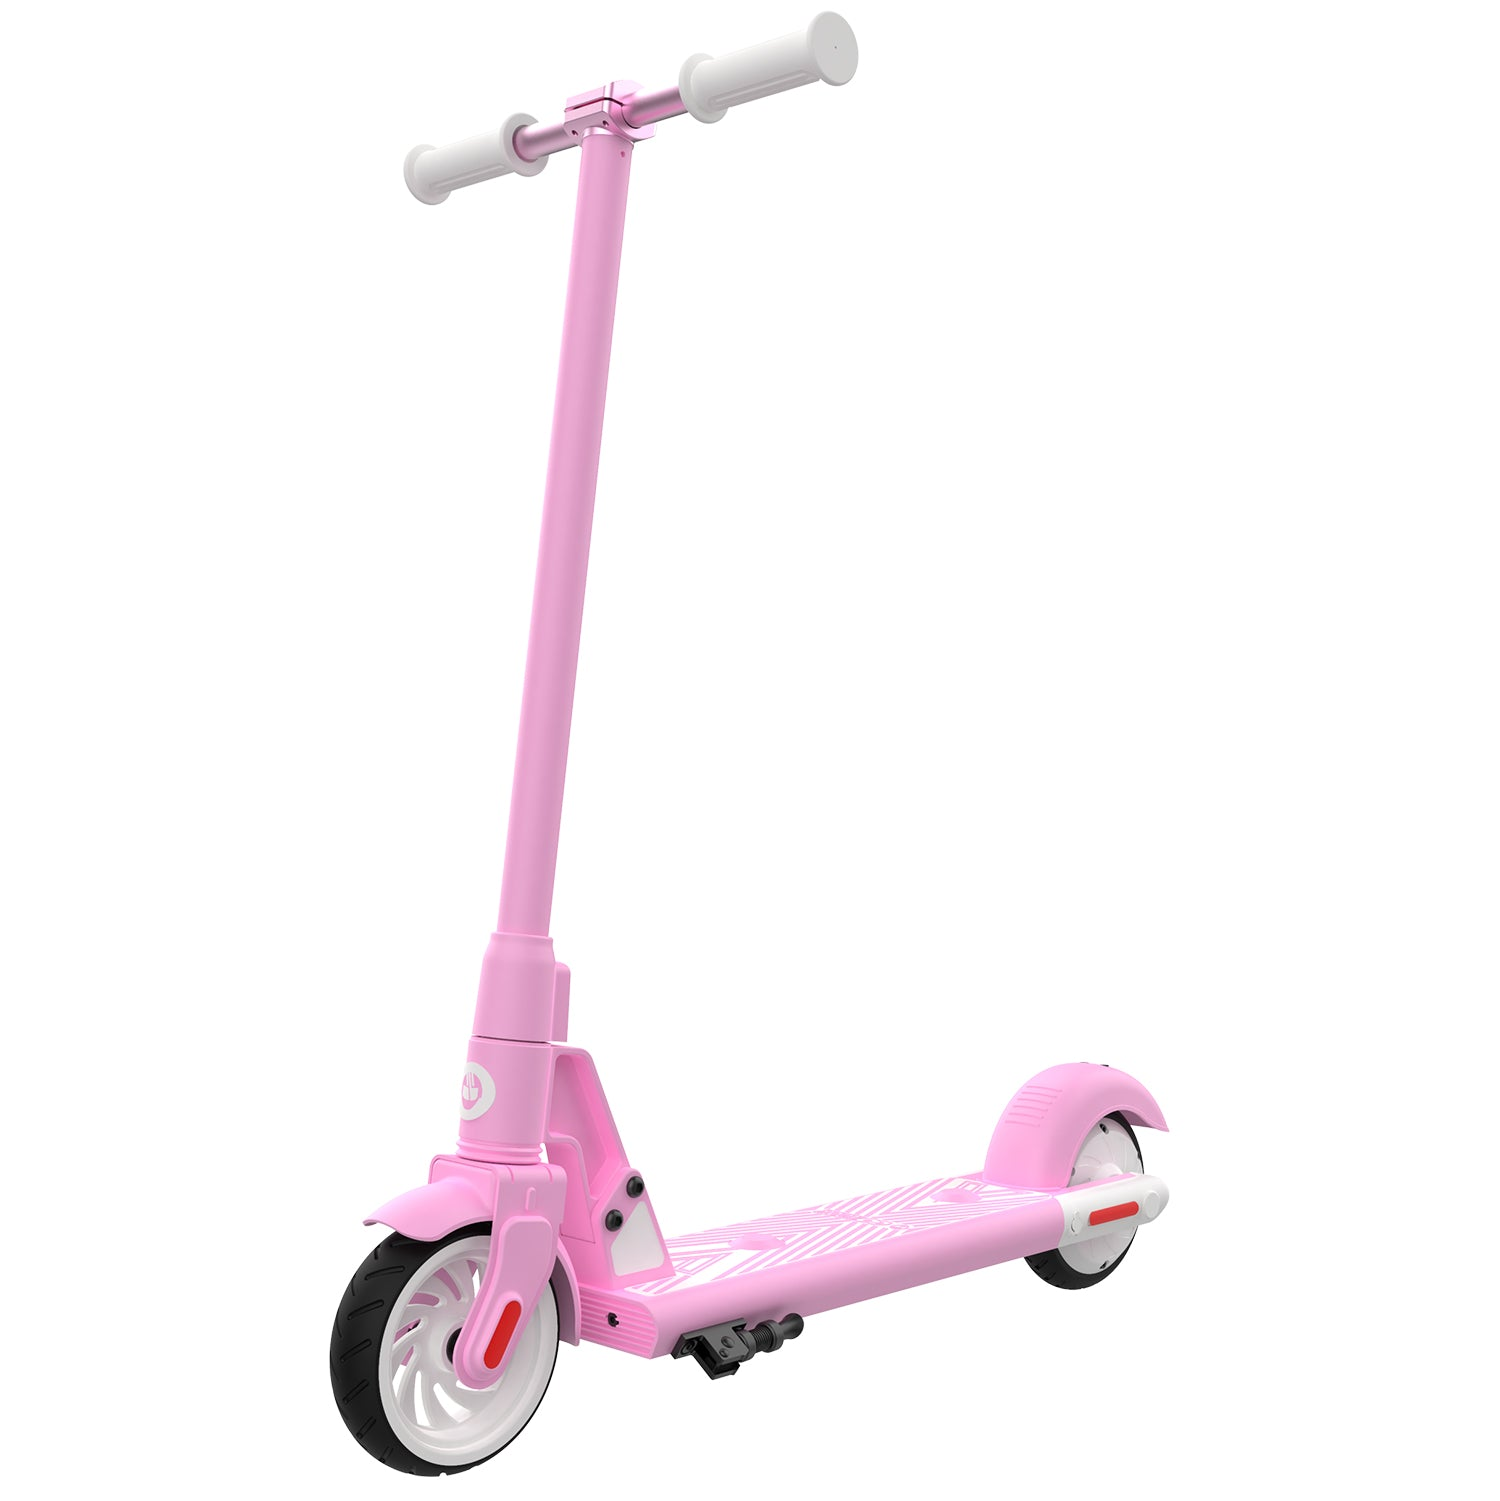 Pink gks electric scooter for kids main image